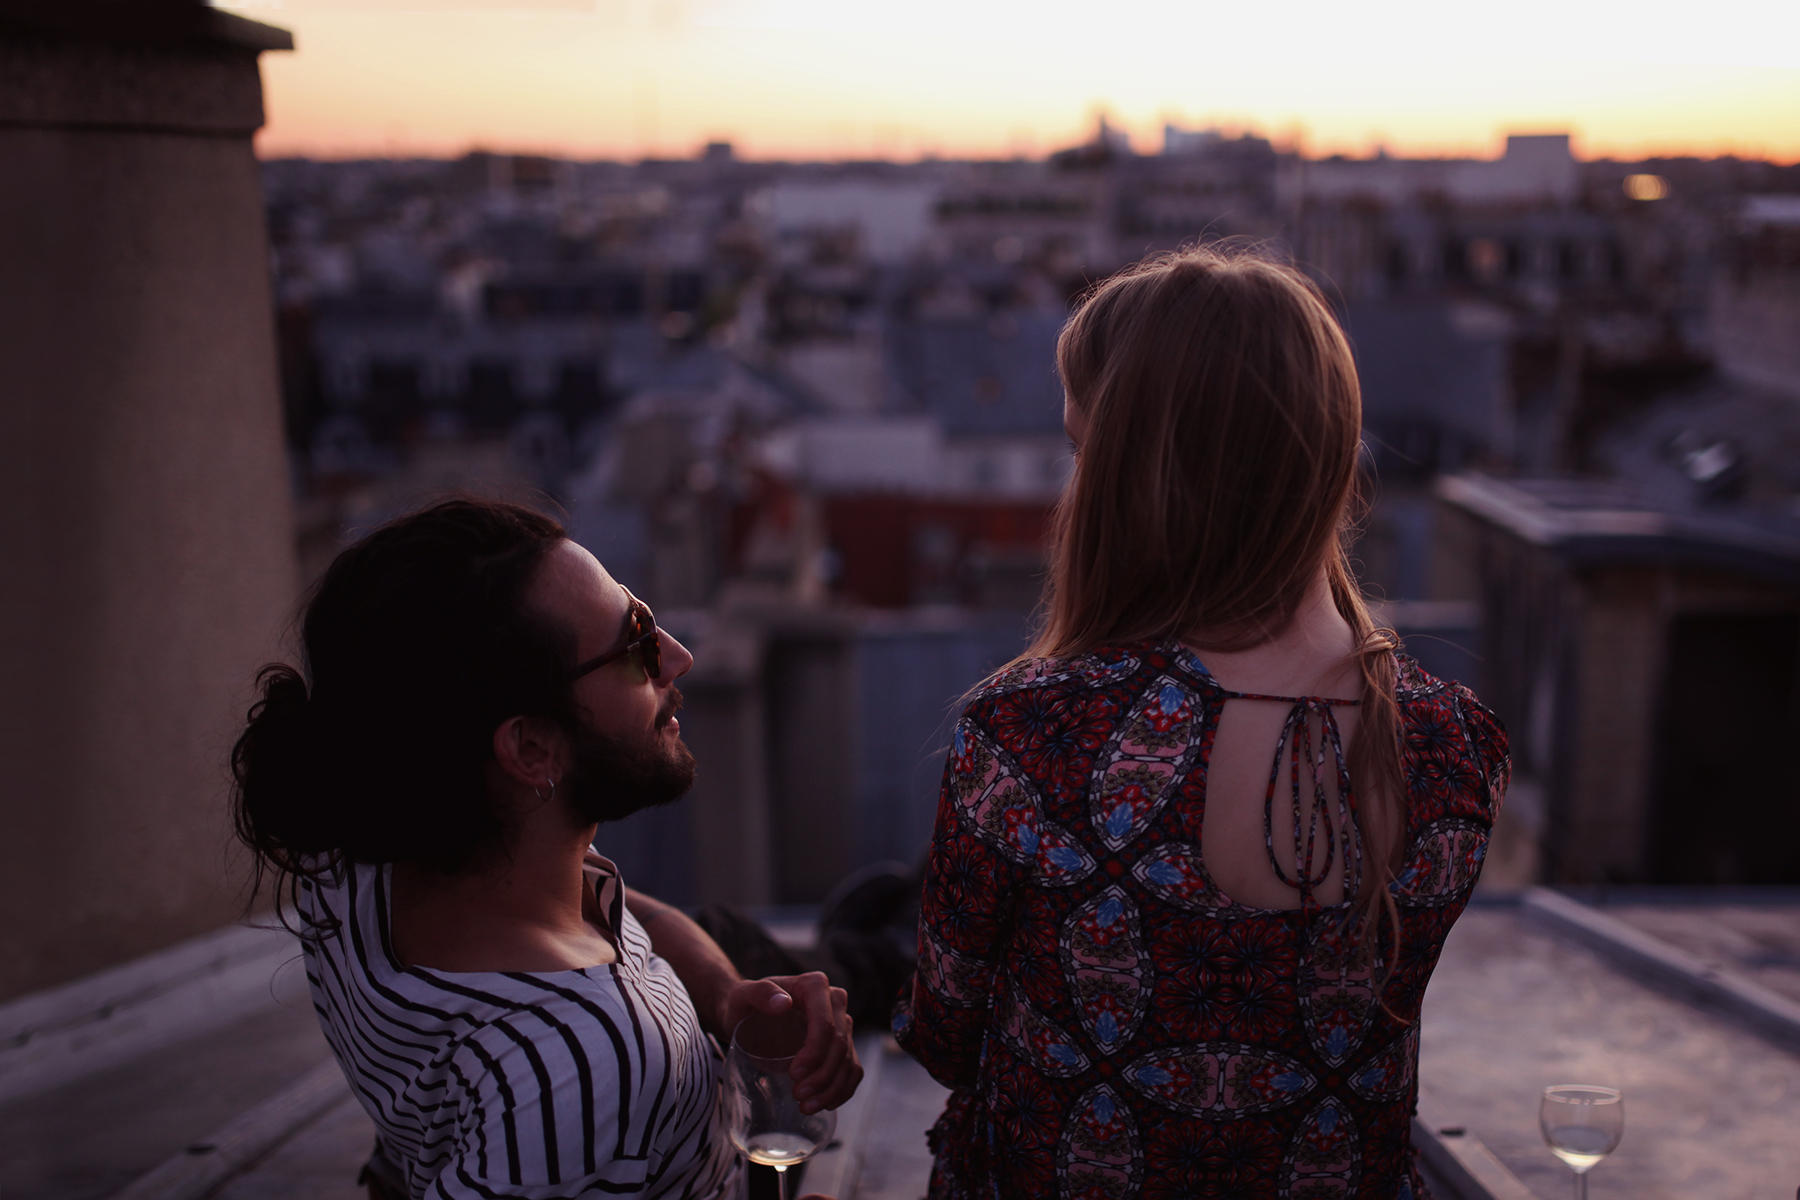 Romantic Things to Do in Paris - Enjoy The Views From The Rooftops Of Paris